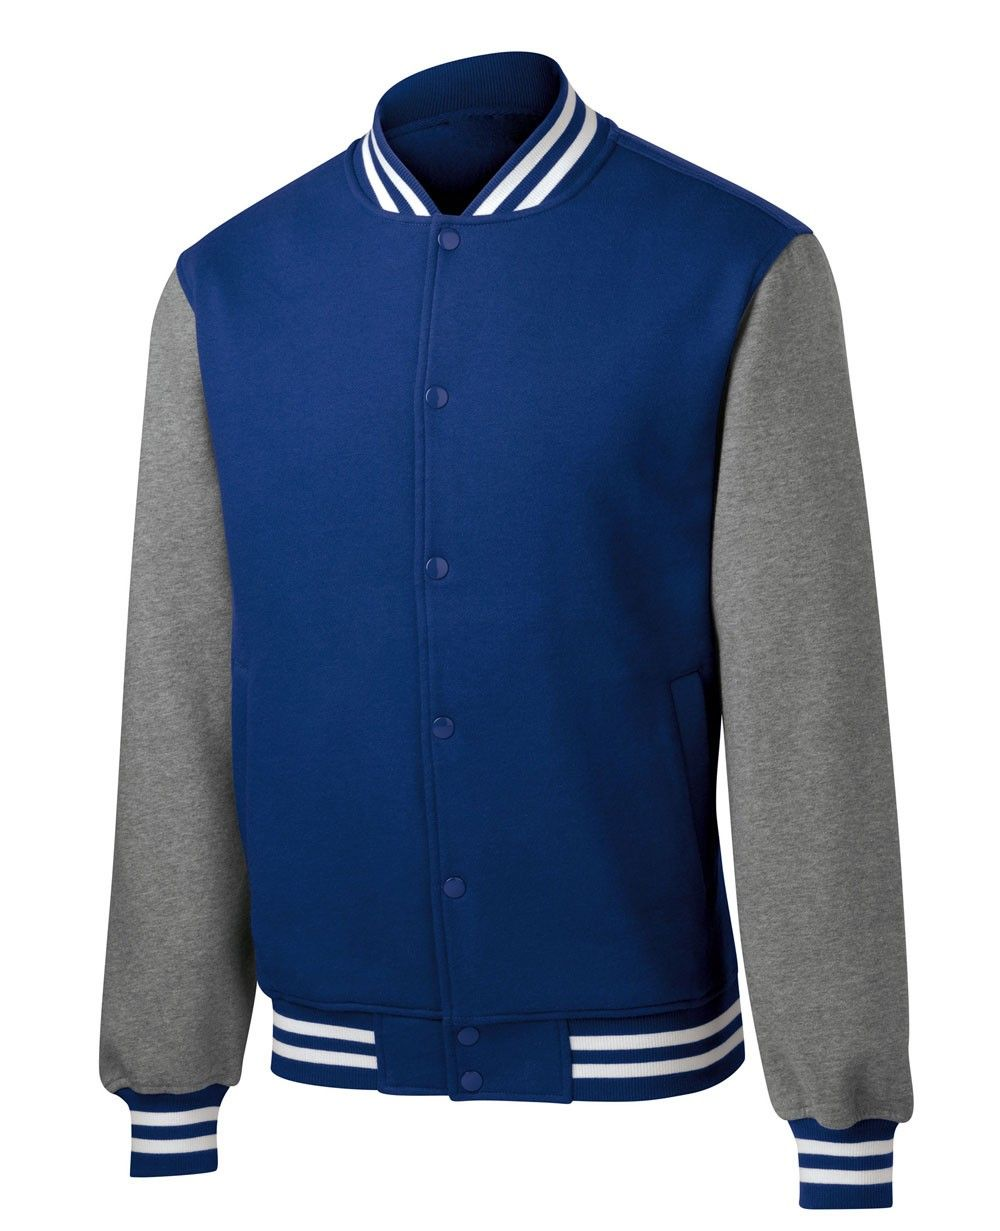 http://www.quickapparels.com/mens-fleece-wool-letterman-jacket ...